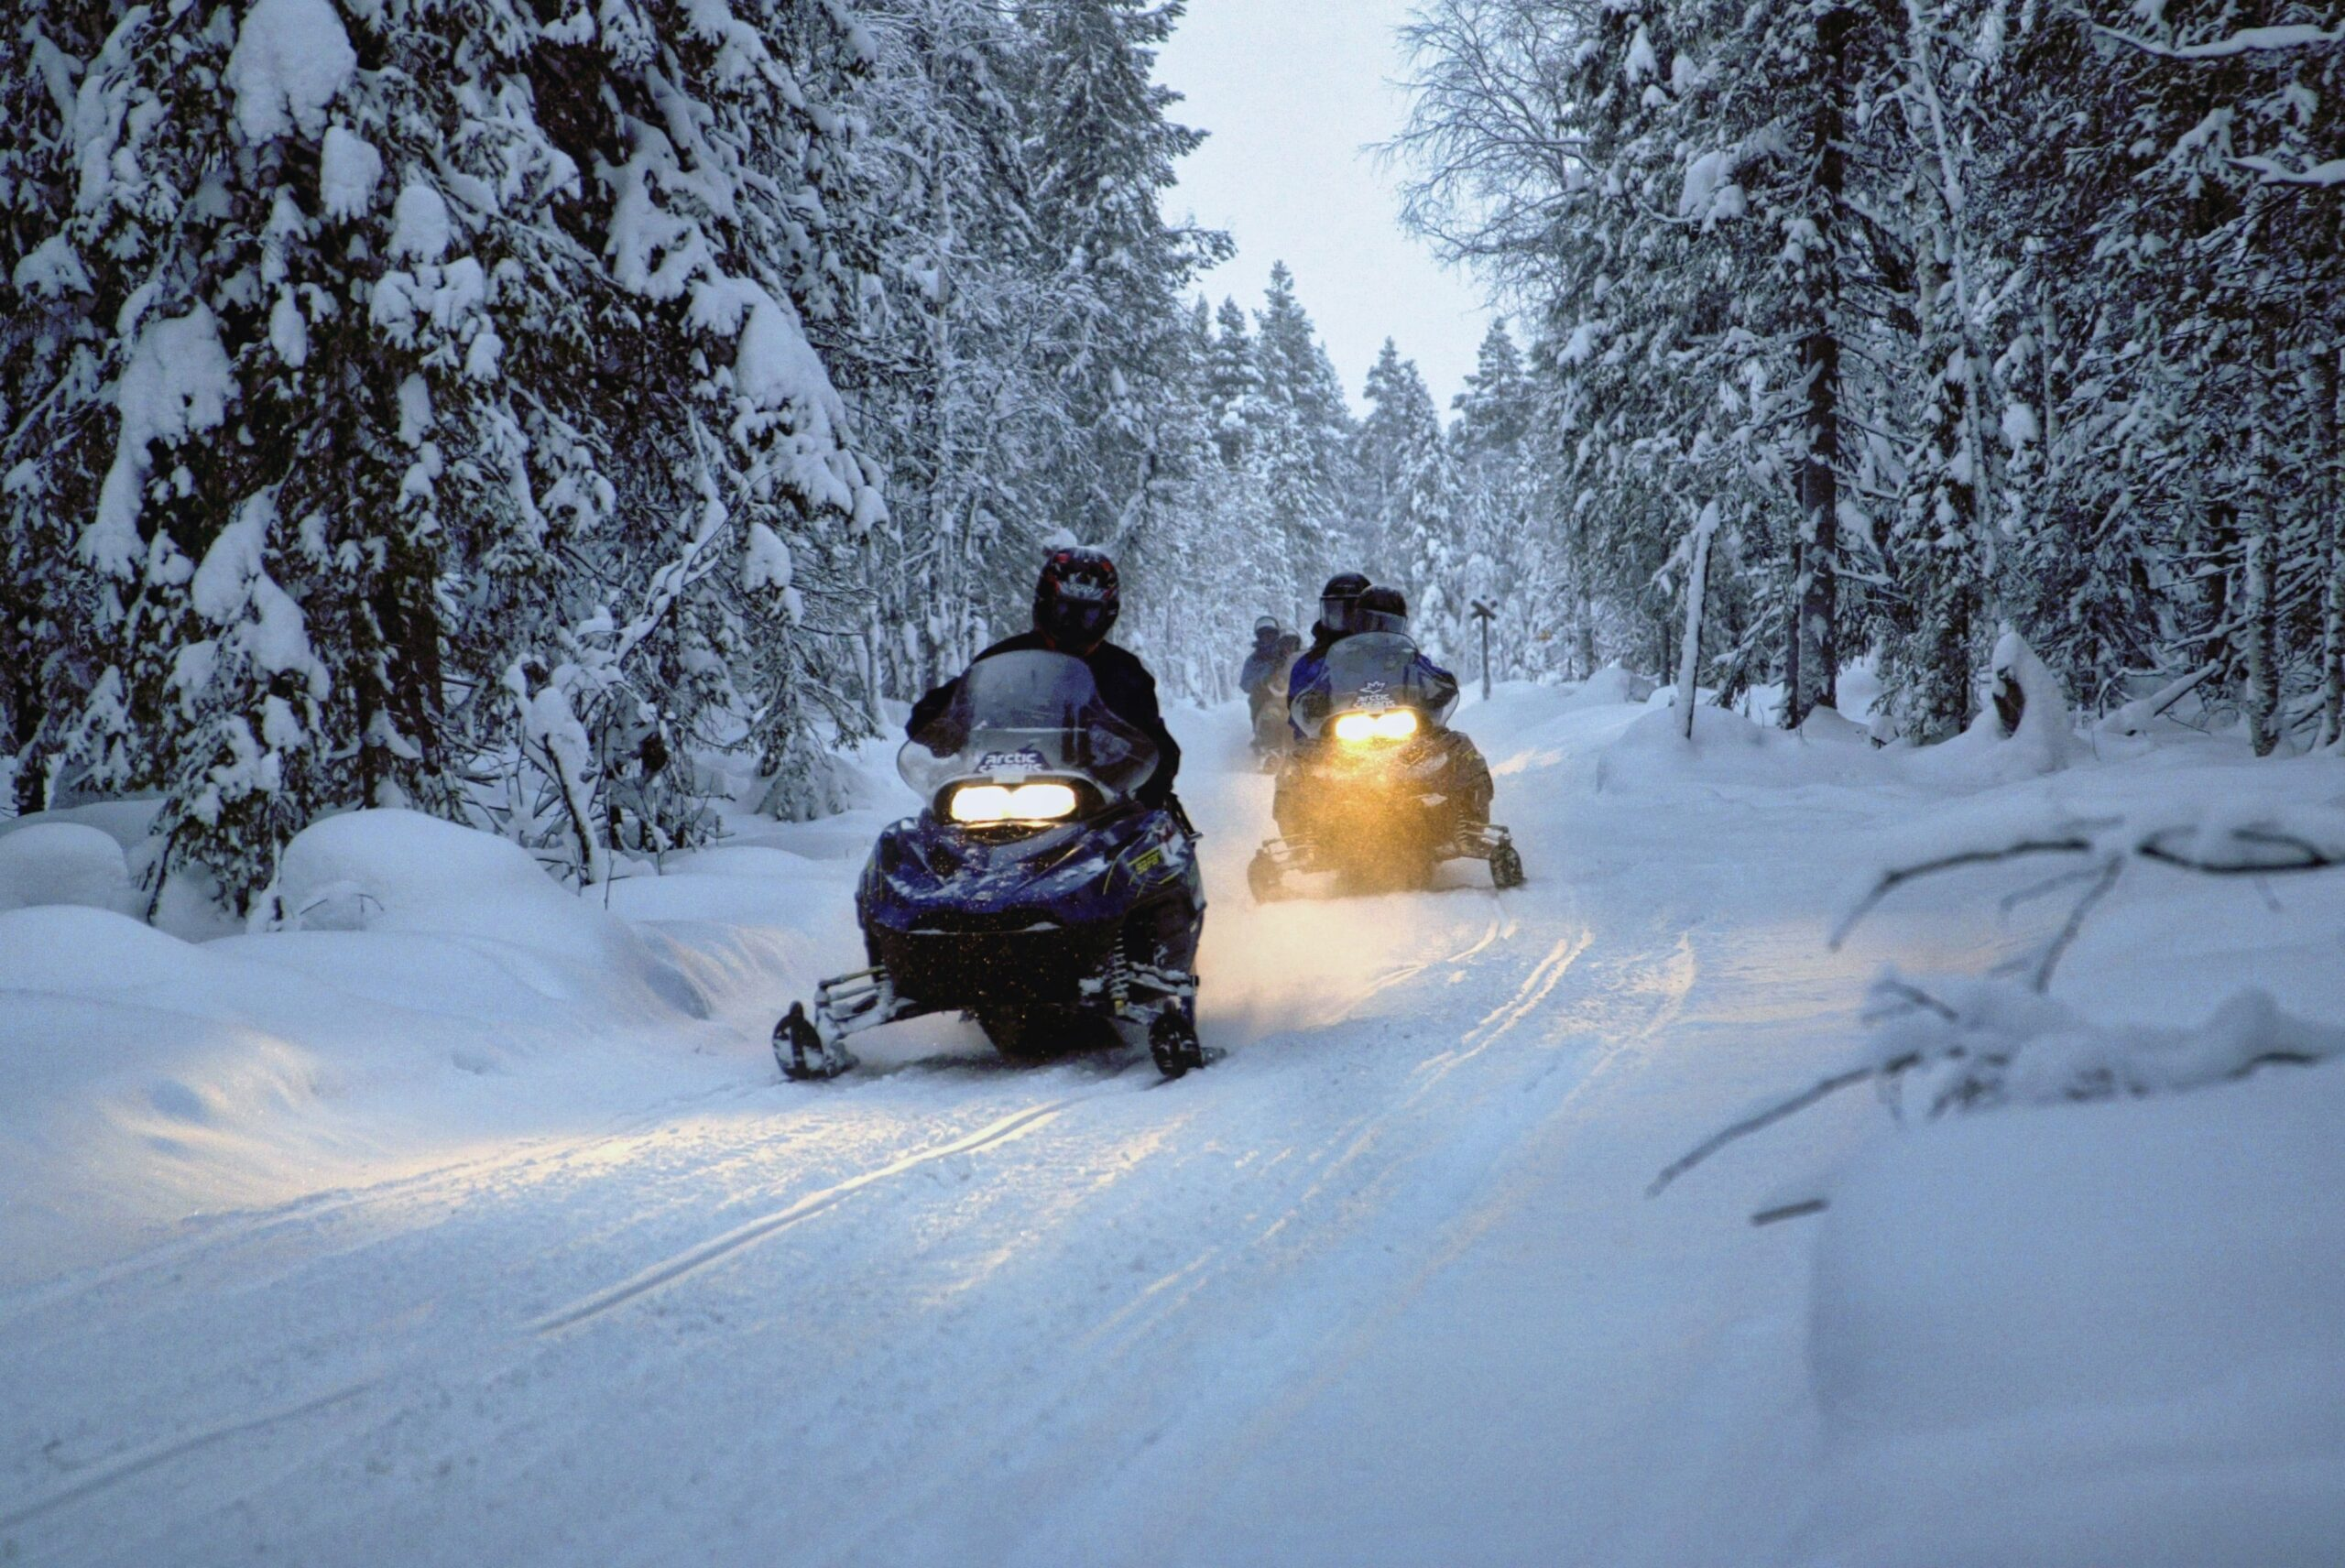 Group of people snowmobiling in forest, winter.